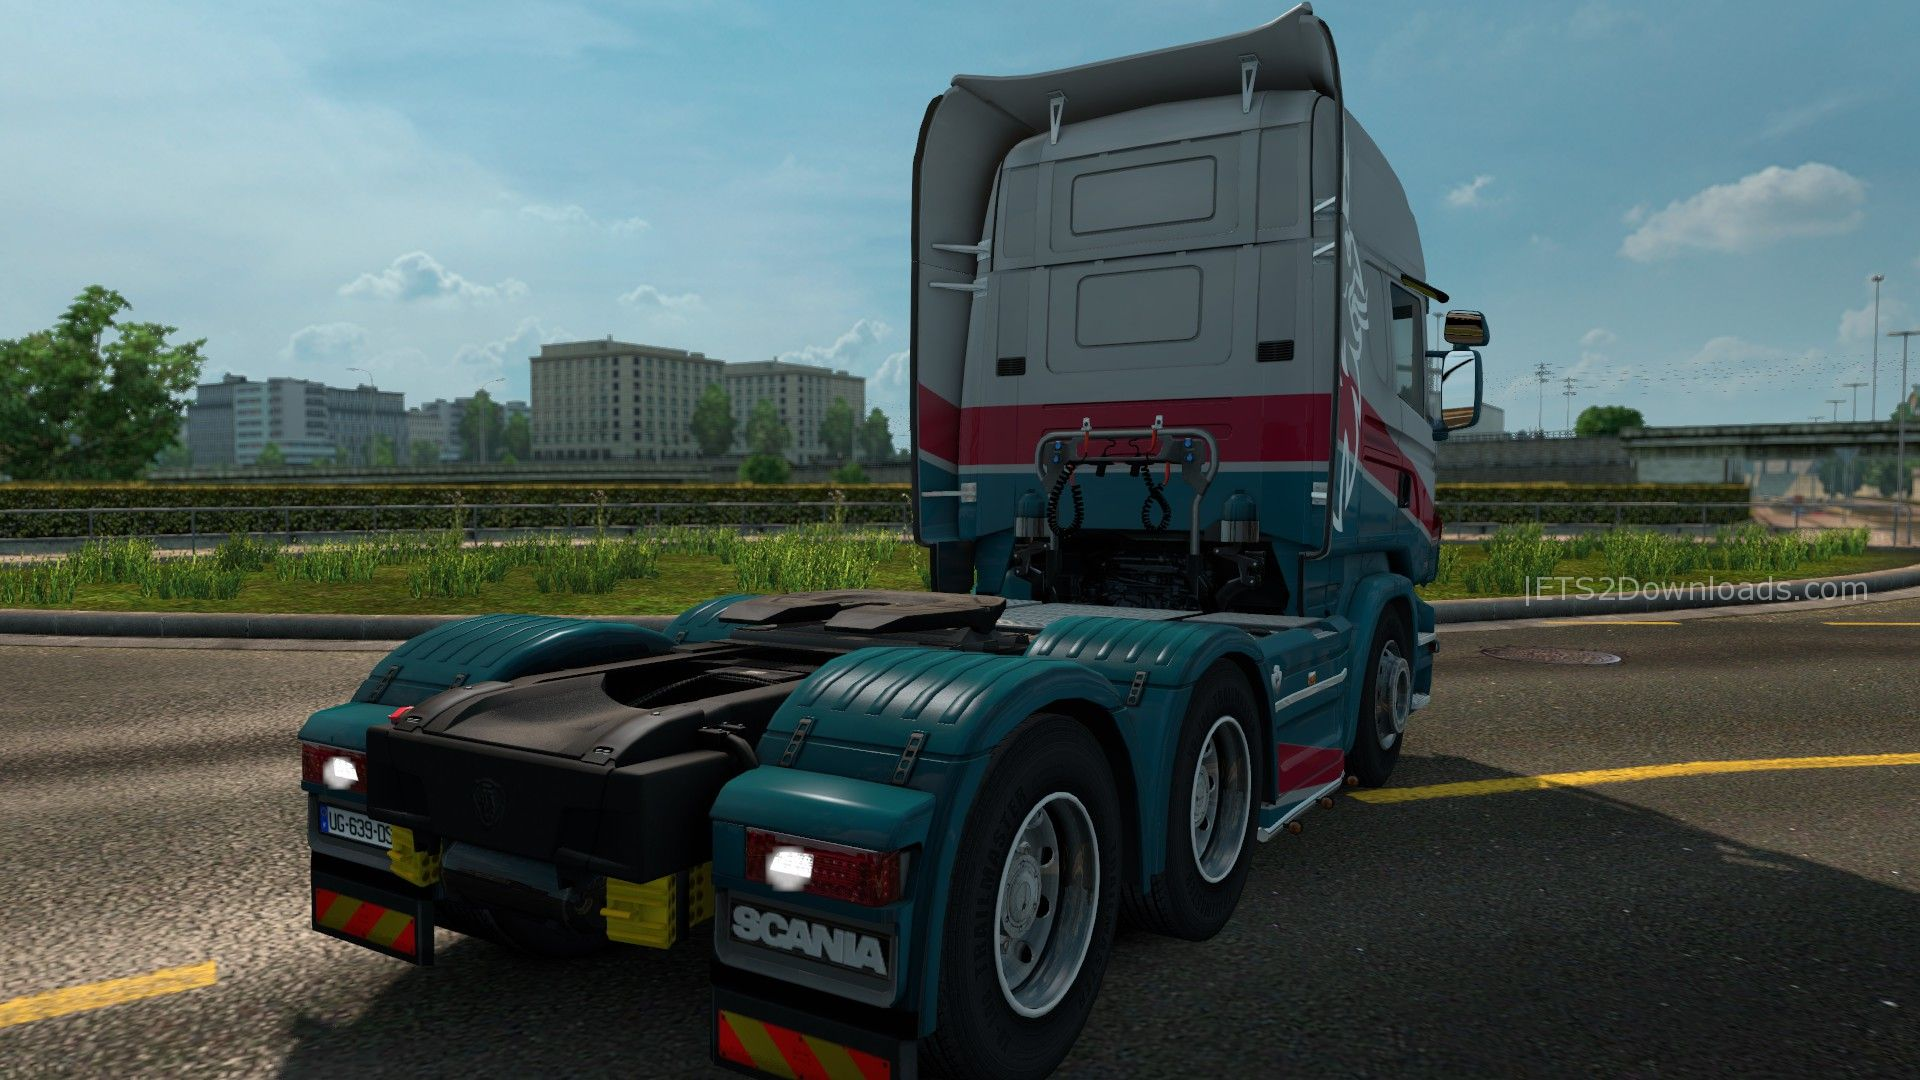 scania-r-series-modified-by-pete379jp-15